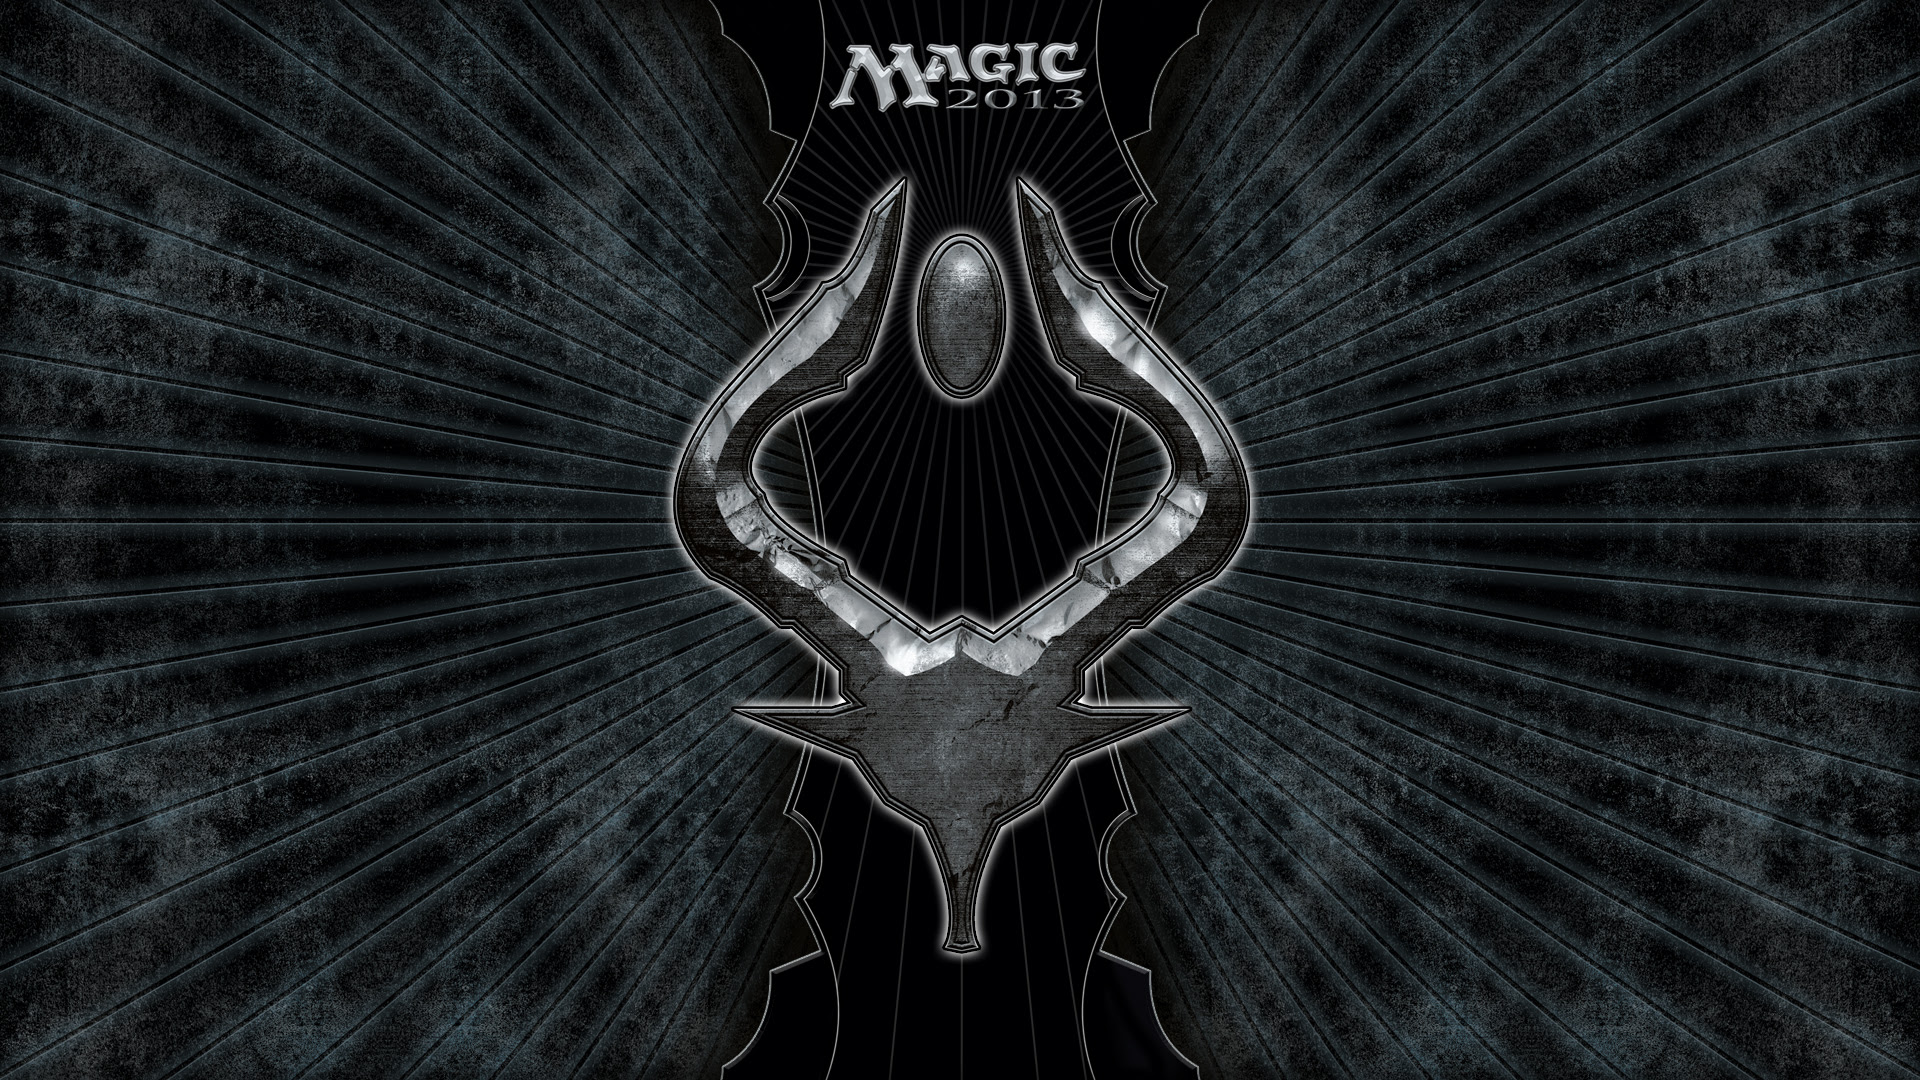 Mtg Realm Magic 2013 Wallpaper